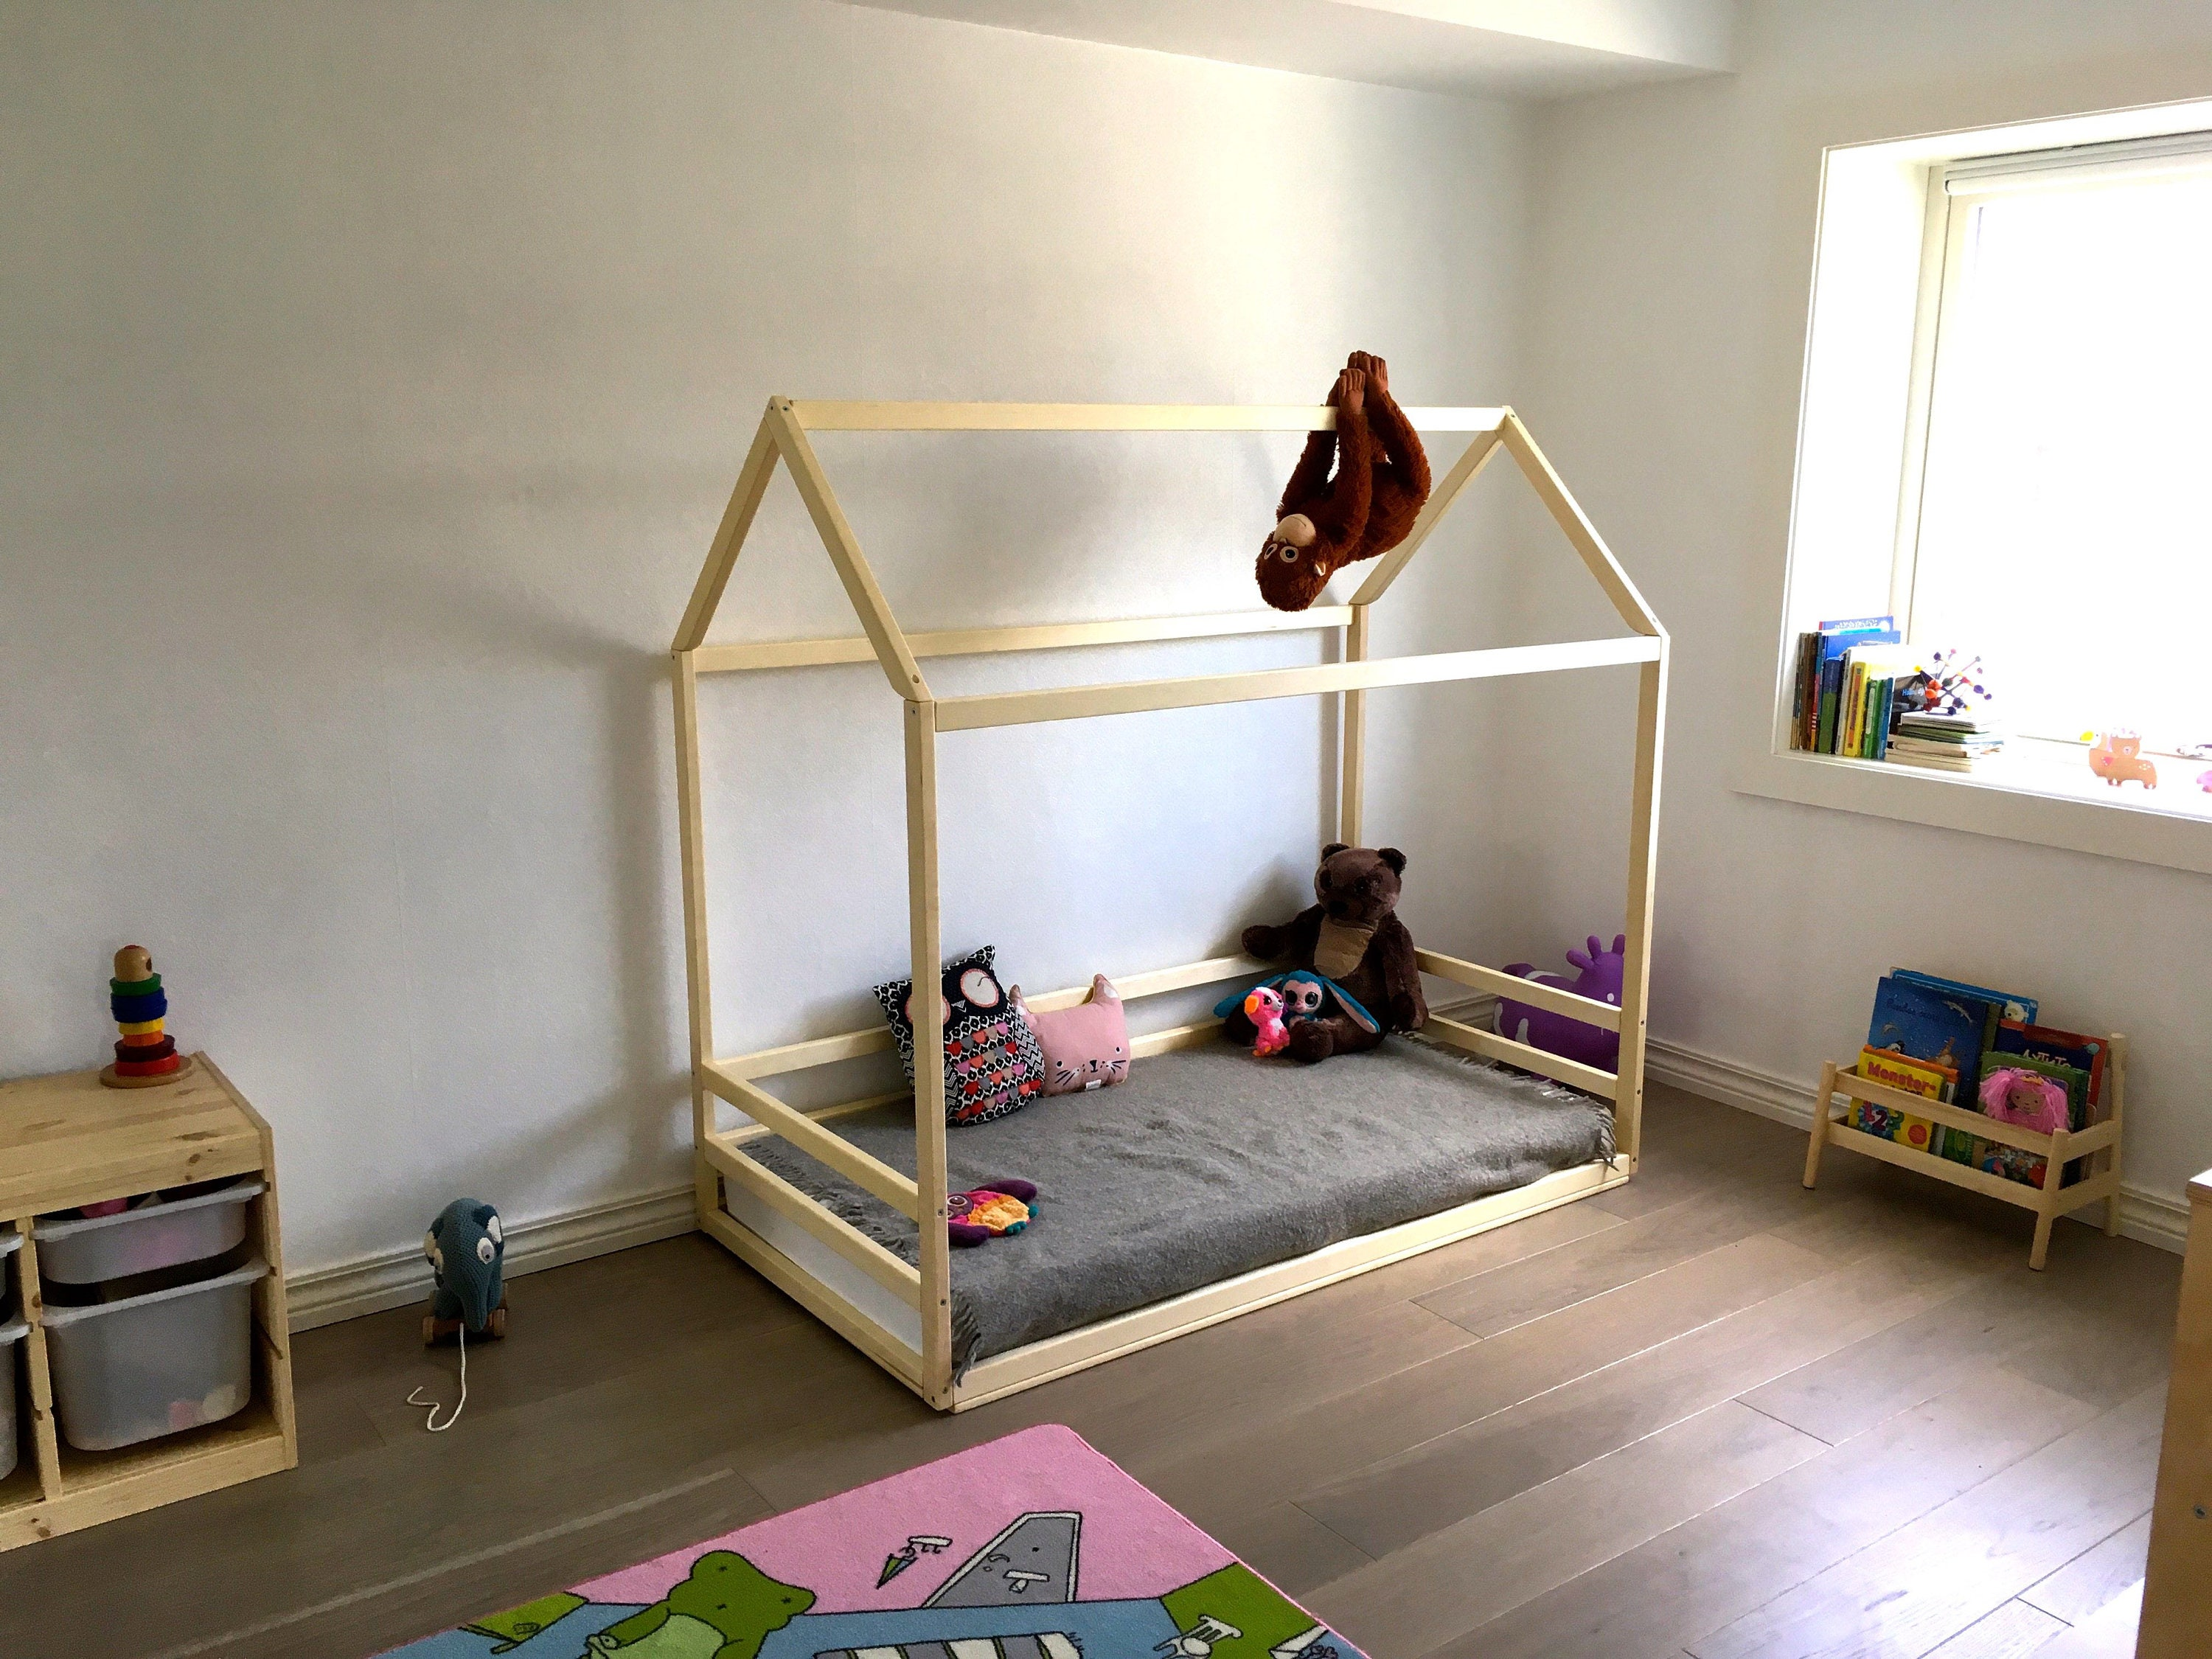 7 Inspiring Kid Room Color Options For Your Little Ones: Toddler House Bed, Montessori Floor Bed, Teepee Bed, Kid